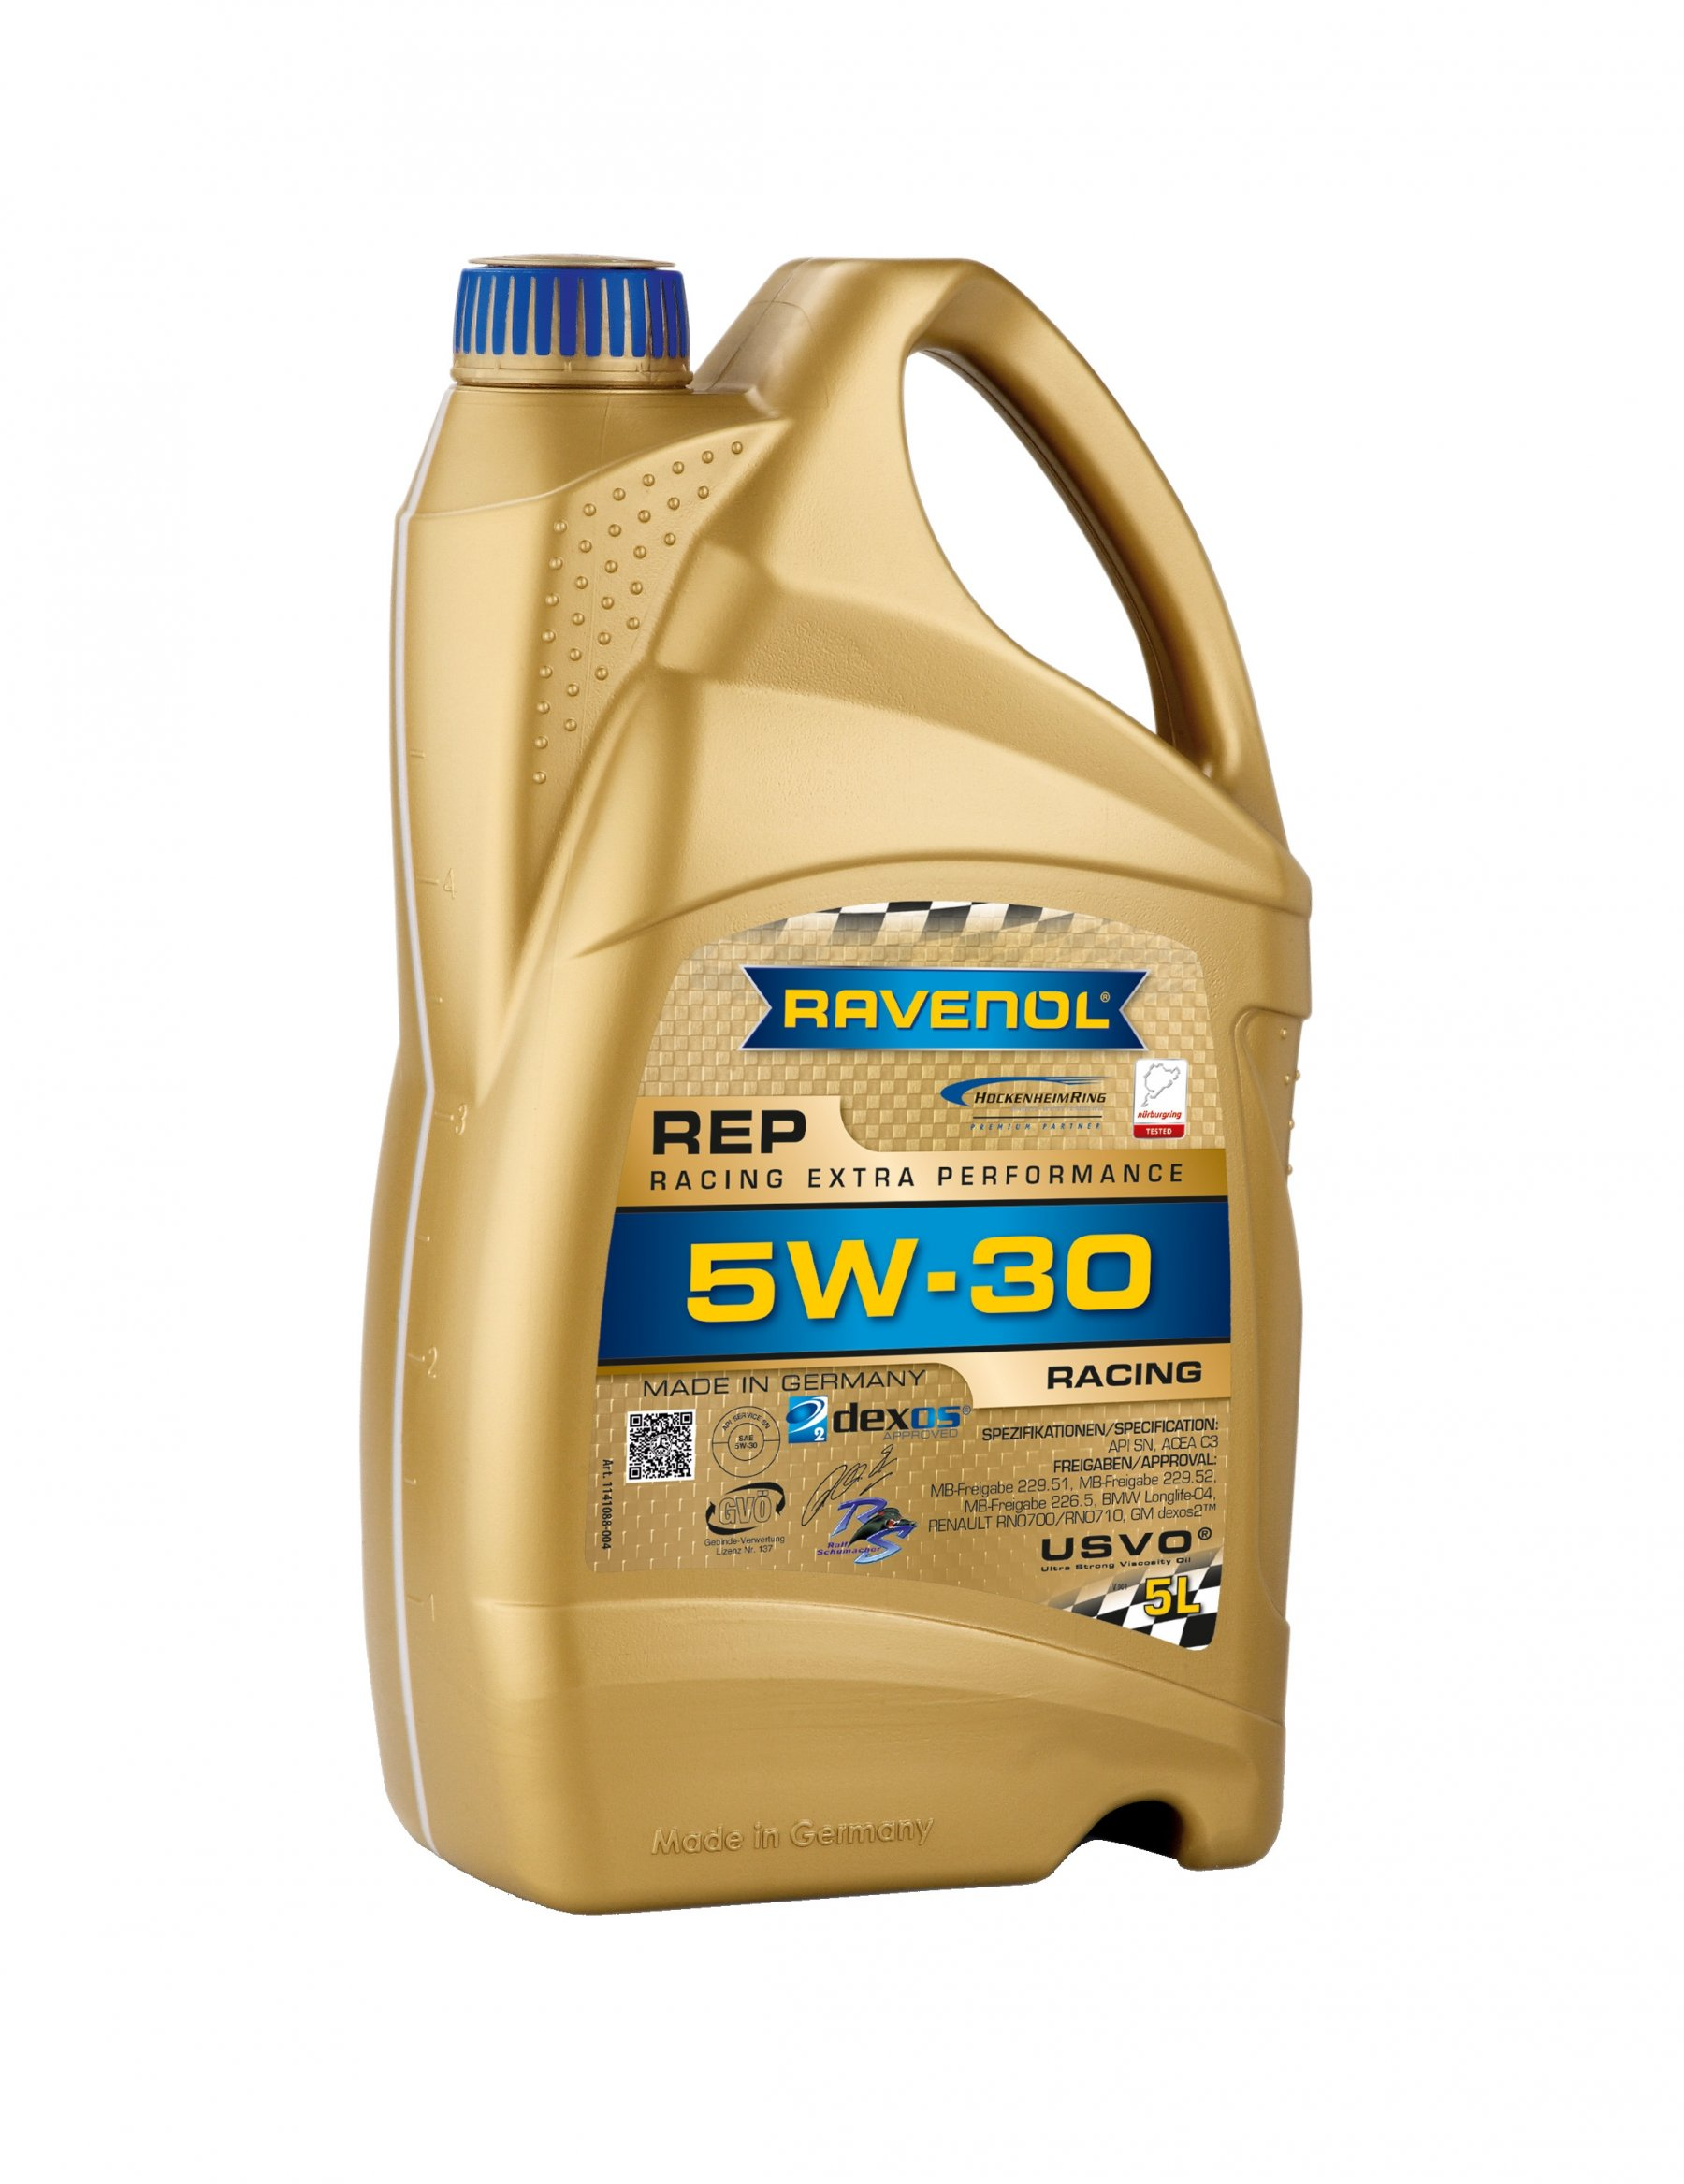 ULEI MOTOR RAVENOL 1141088 REP Racing Extra Performance 5W30 4L